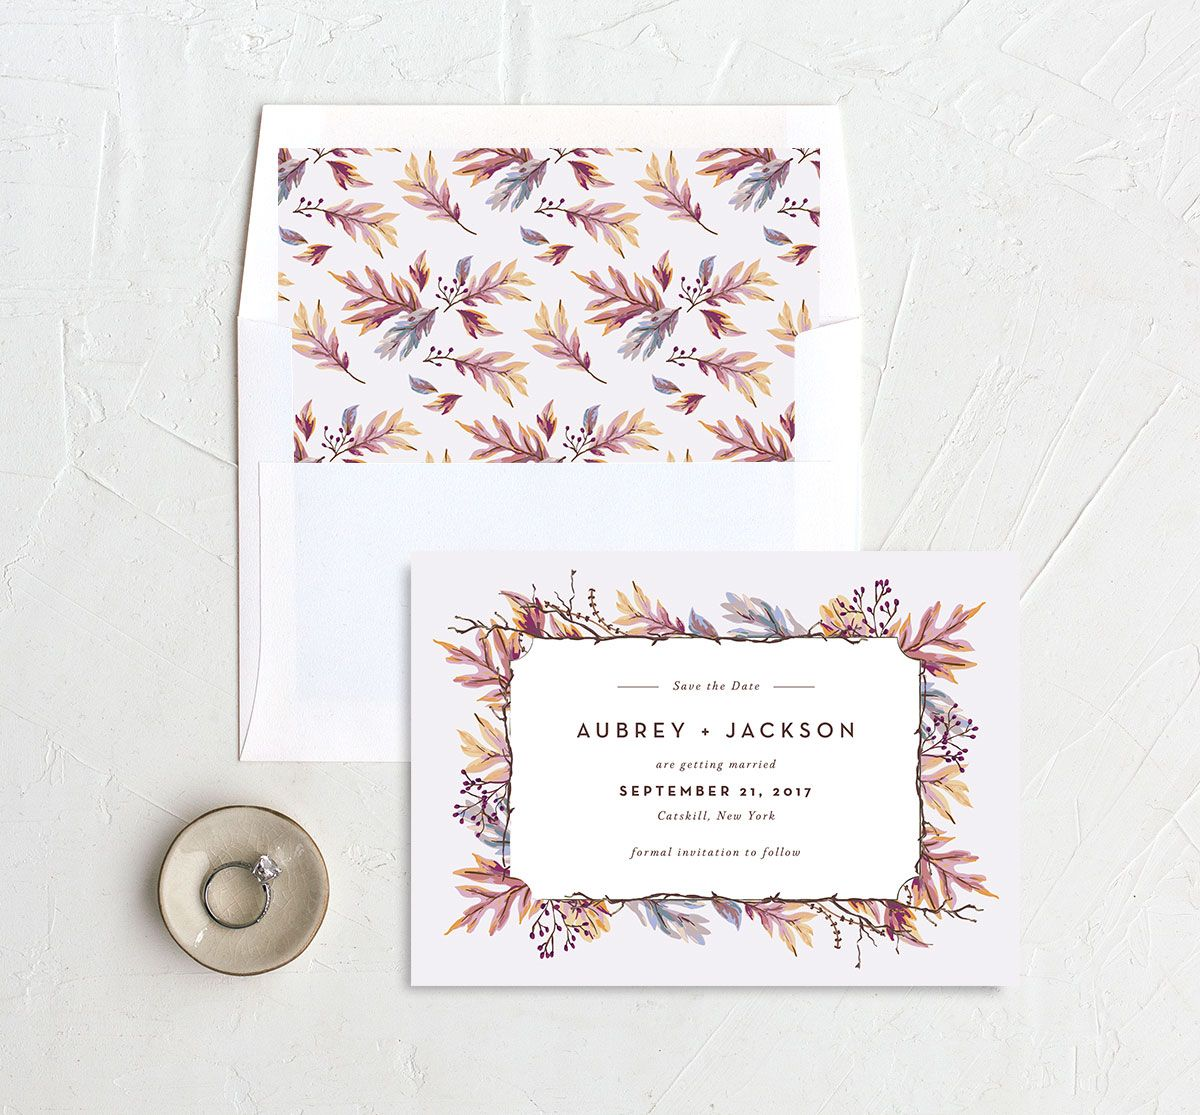 Autumn Leaves save the date with liner